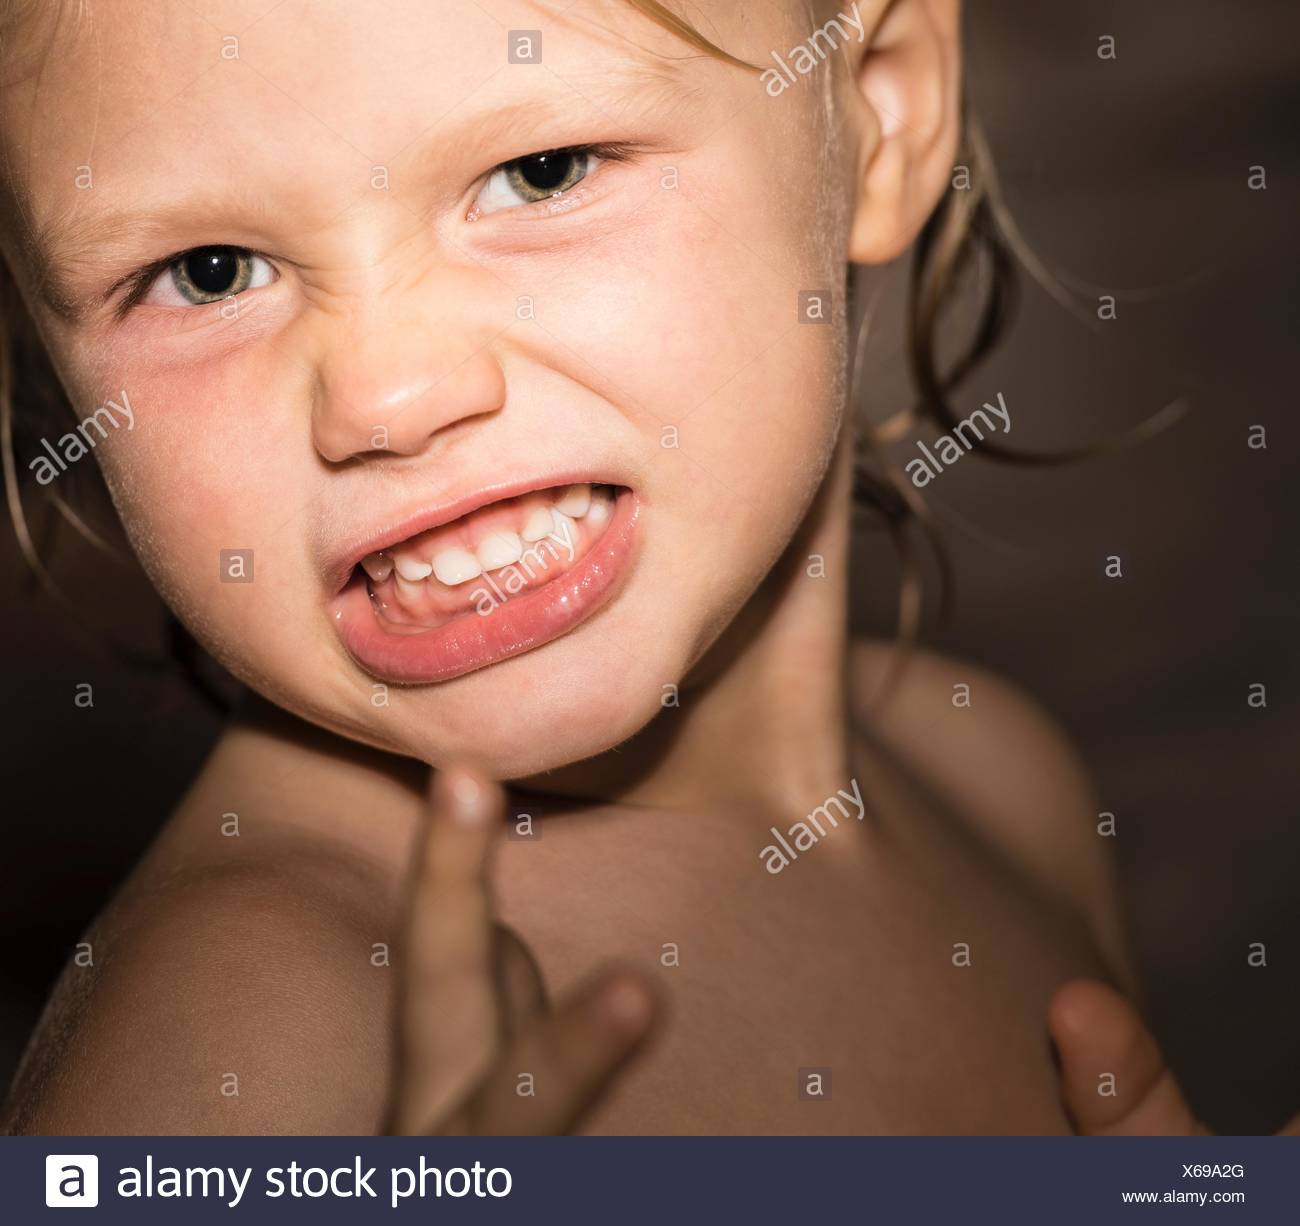 Close up portrait of aggressive boy with wet hair - Stock Image